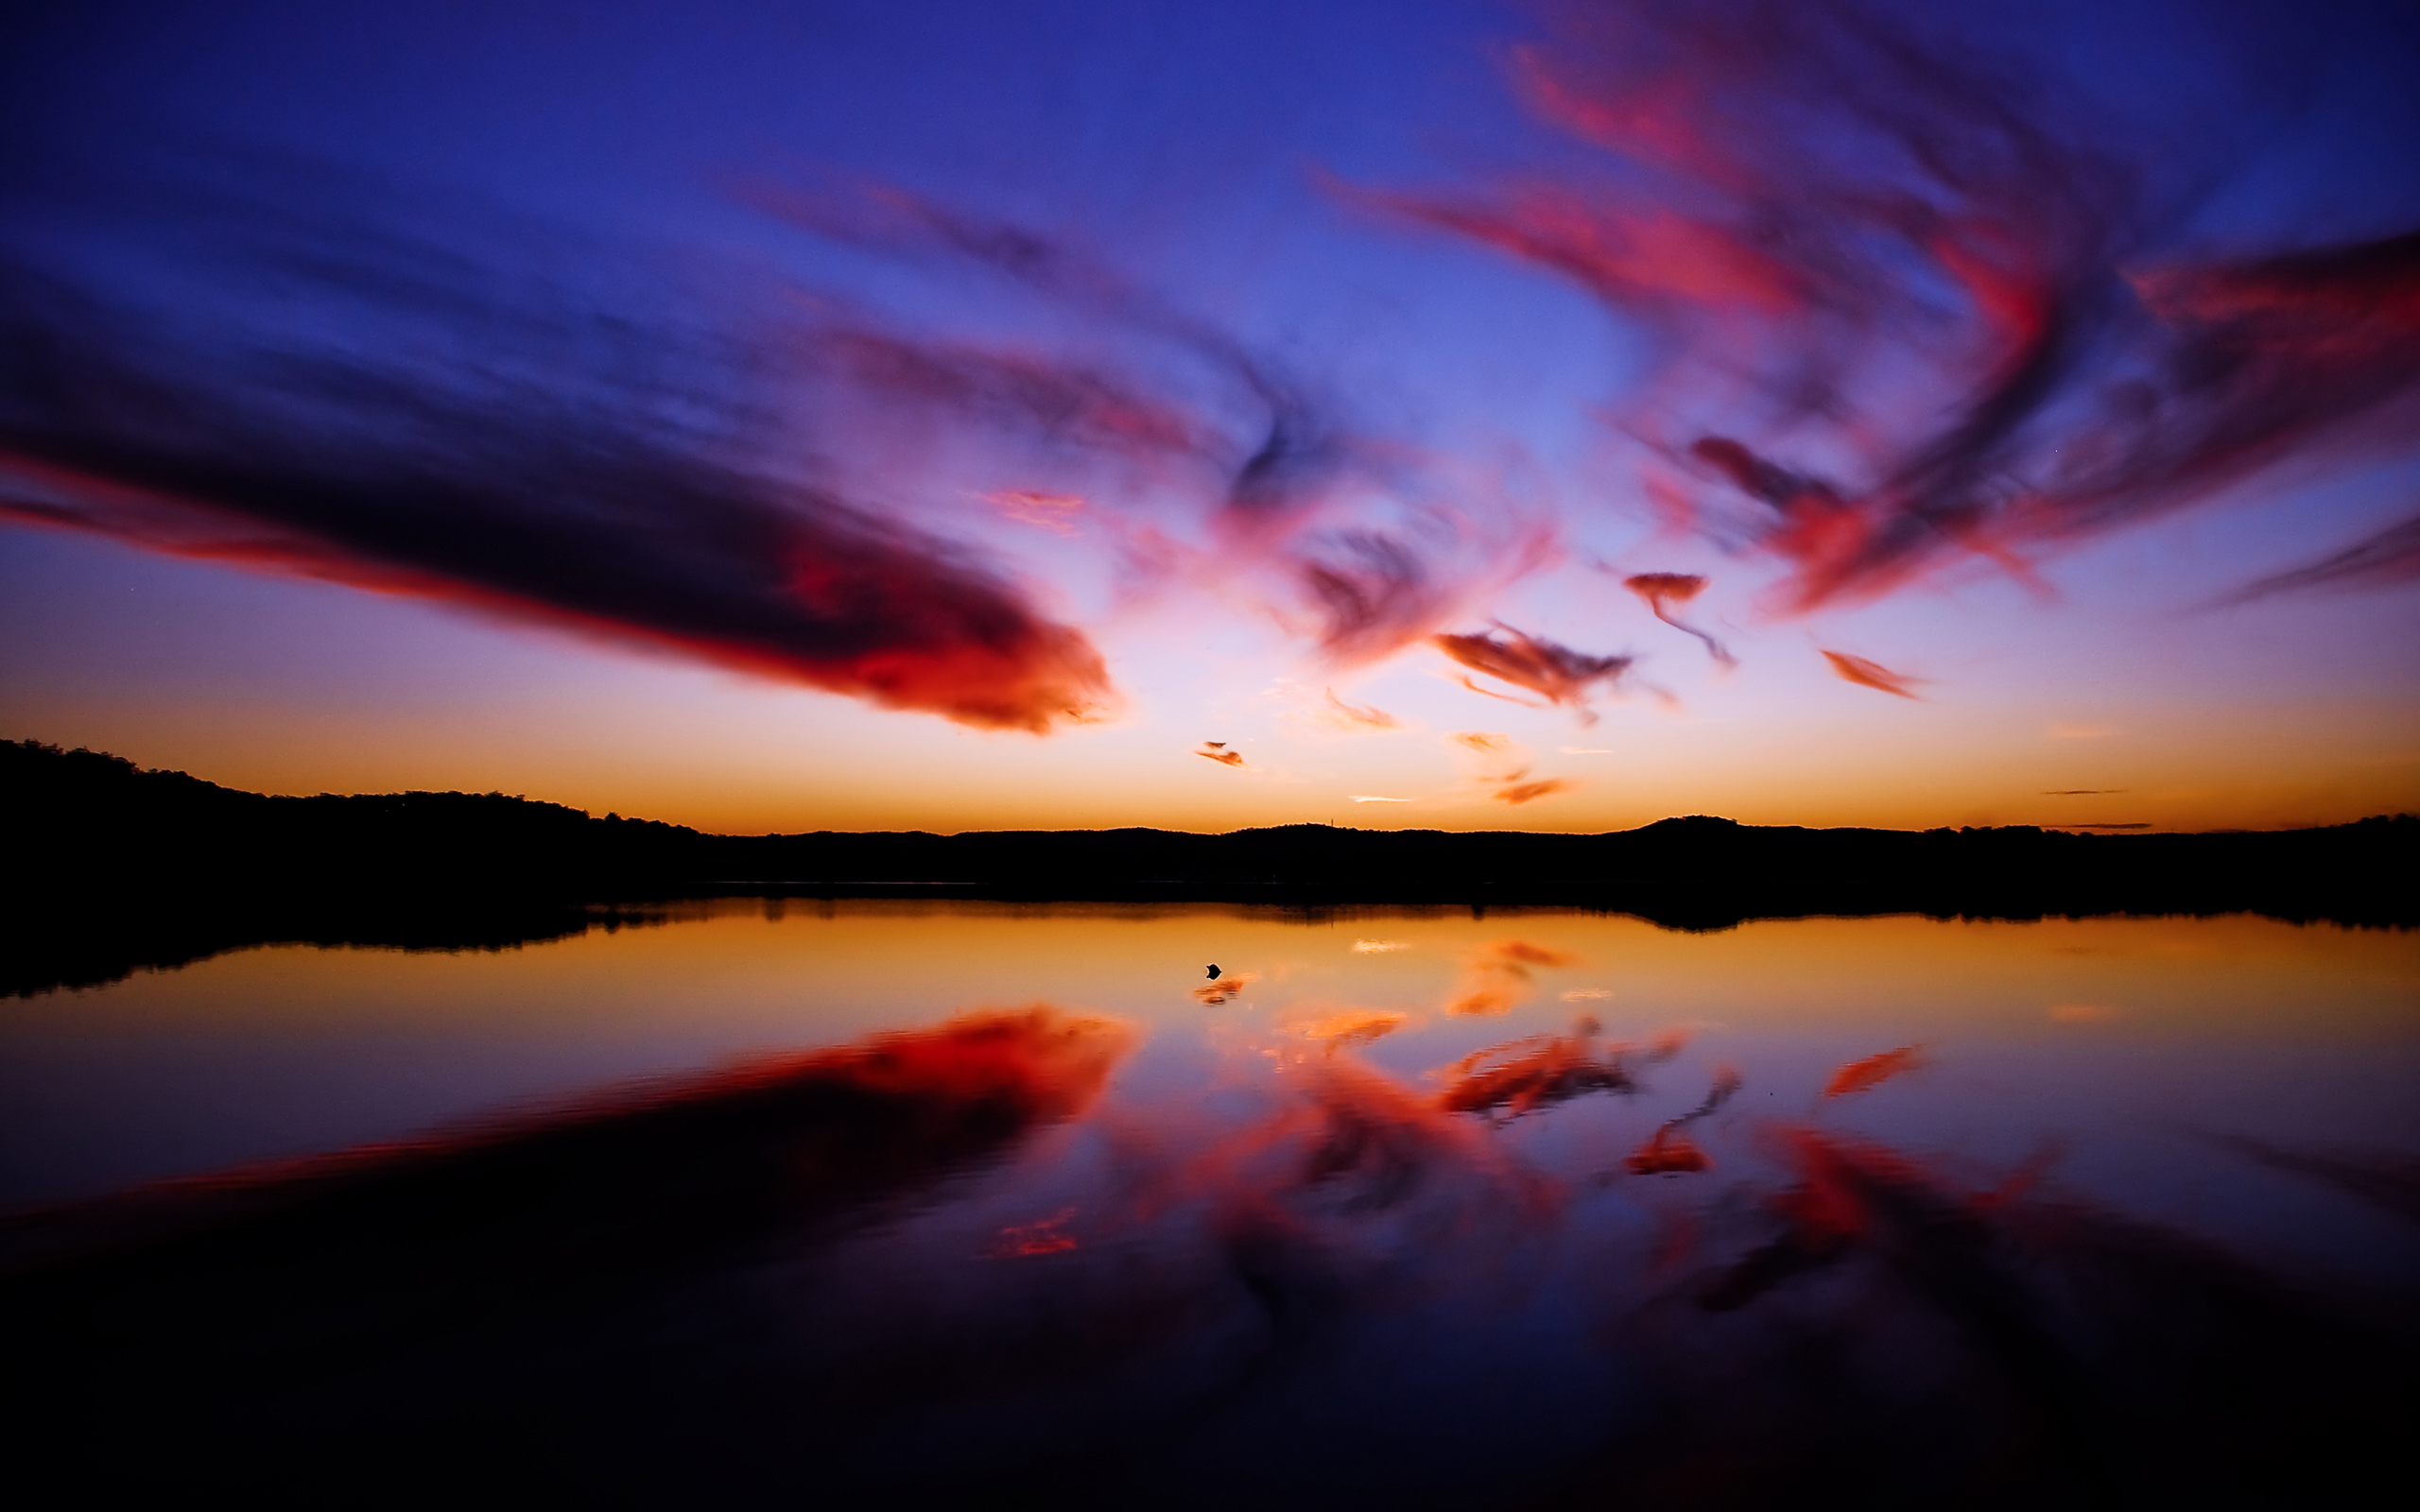 HD Wallpapers Sky Reflections